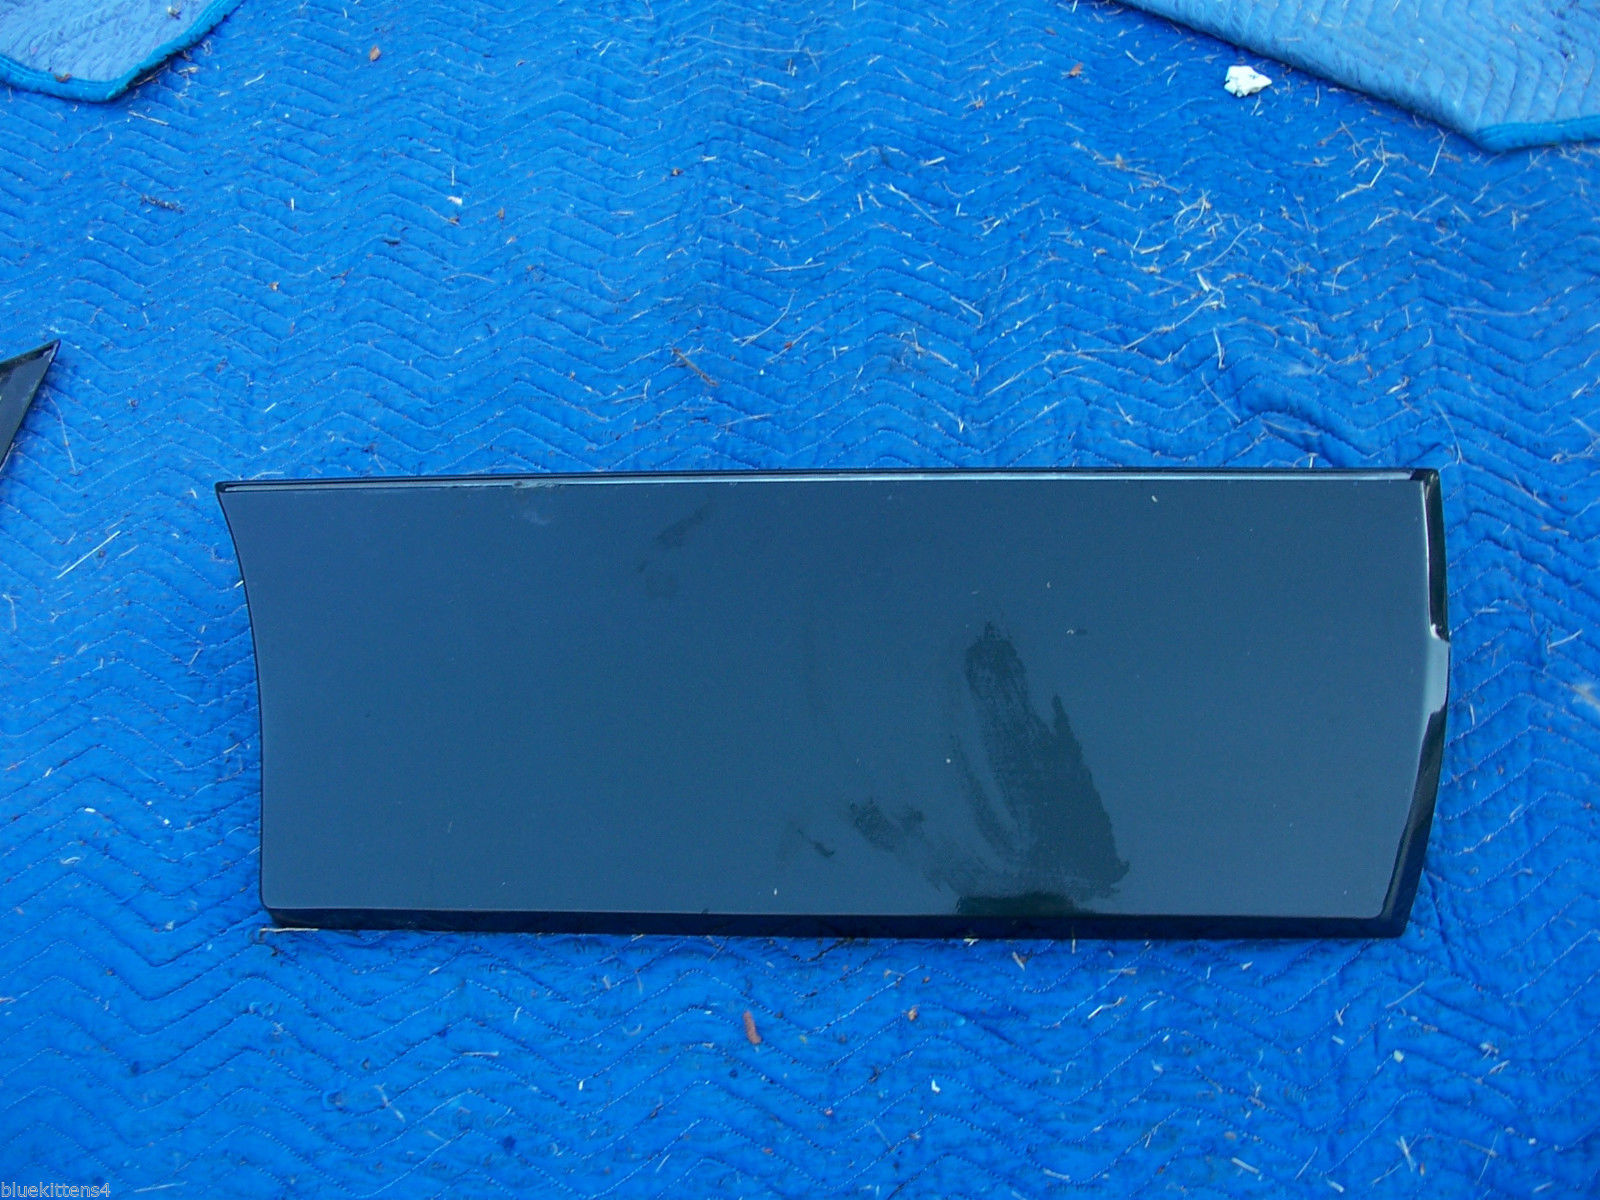 1993 SEVILLE STS SCUFFED RIGHT REAR DOOR TRIM PANEL OEM USED GM ORIG CADILLAC